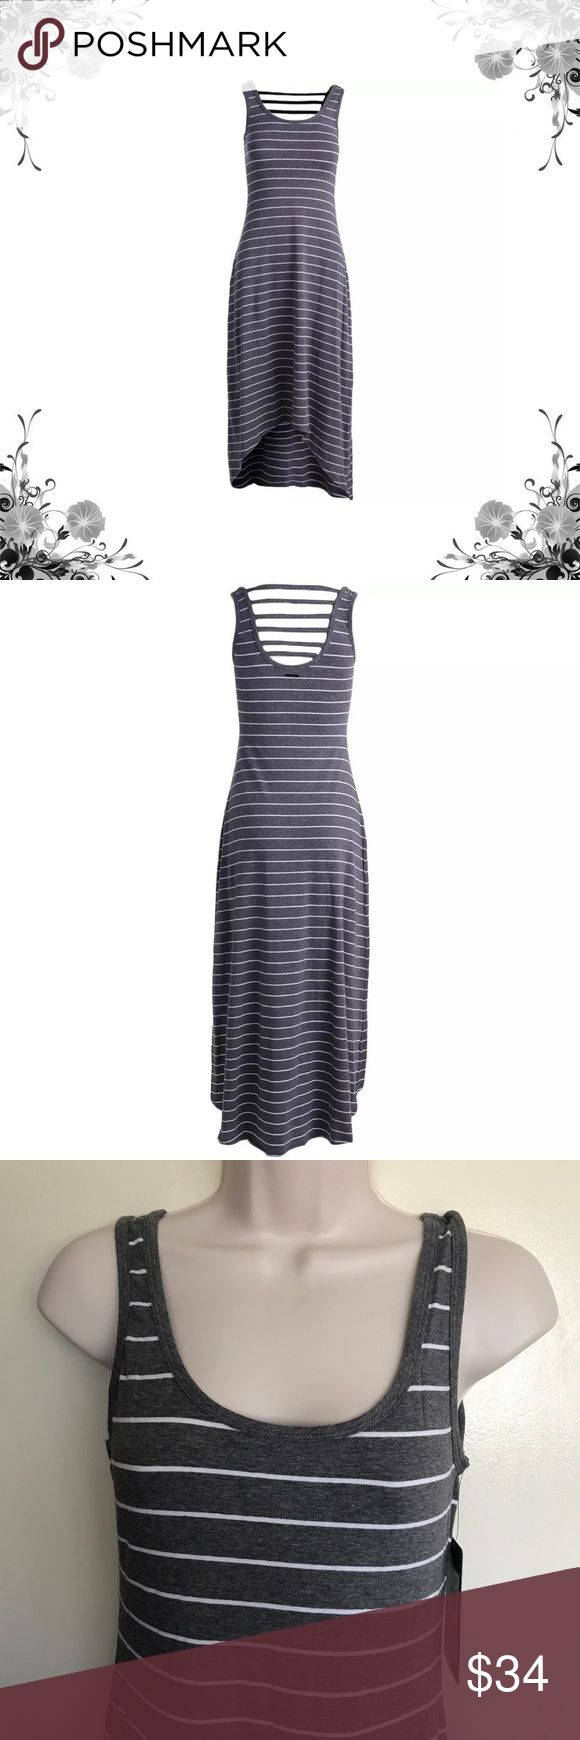 """Marc New York by Andrew Marc Striped Maxi Manufacturer Color is Heather Gray/White. Sleeveless Pullover Maxi Dress. Striped. Total Length is approx 55"""". Bust Across is approx 15 1/2"""". Waist Across is approx 14"""". Material is 57% Cotton/38% Modal/5% Spandex. Fabric Type is Jersey. Hi-Low. Bundle for discounts! Thank you for shopping my closet! Andrew Marc Dresses High Low"""